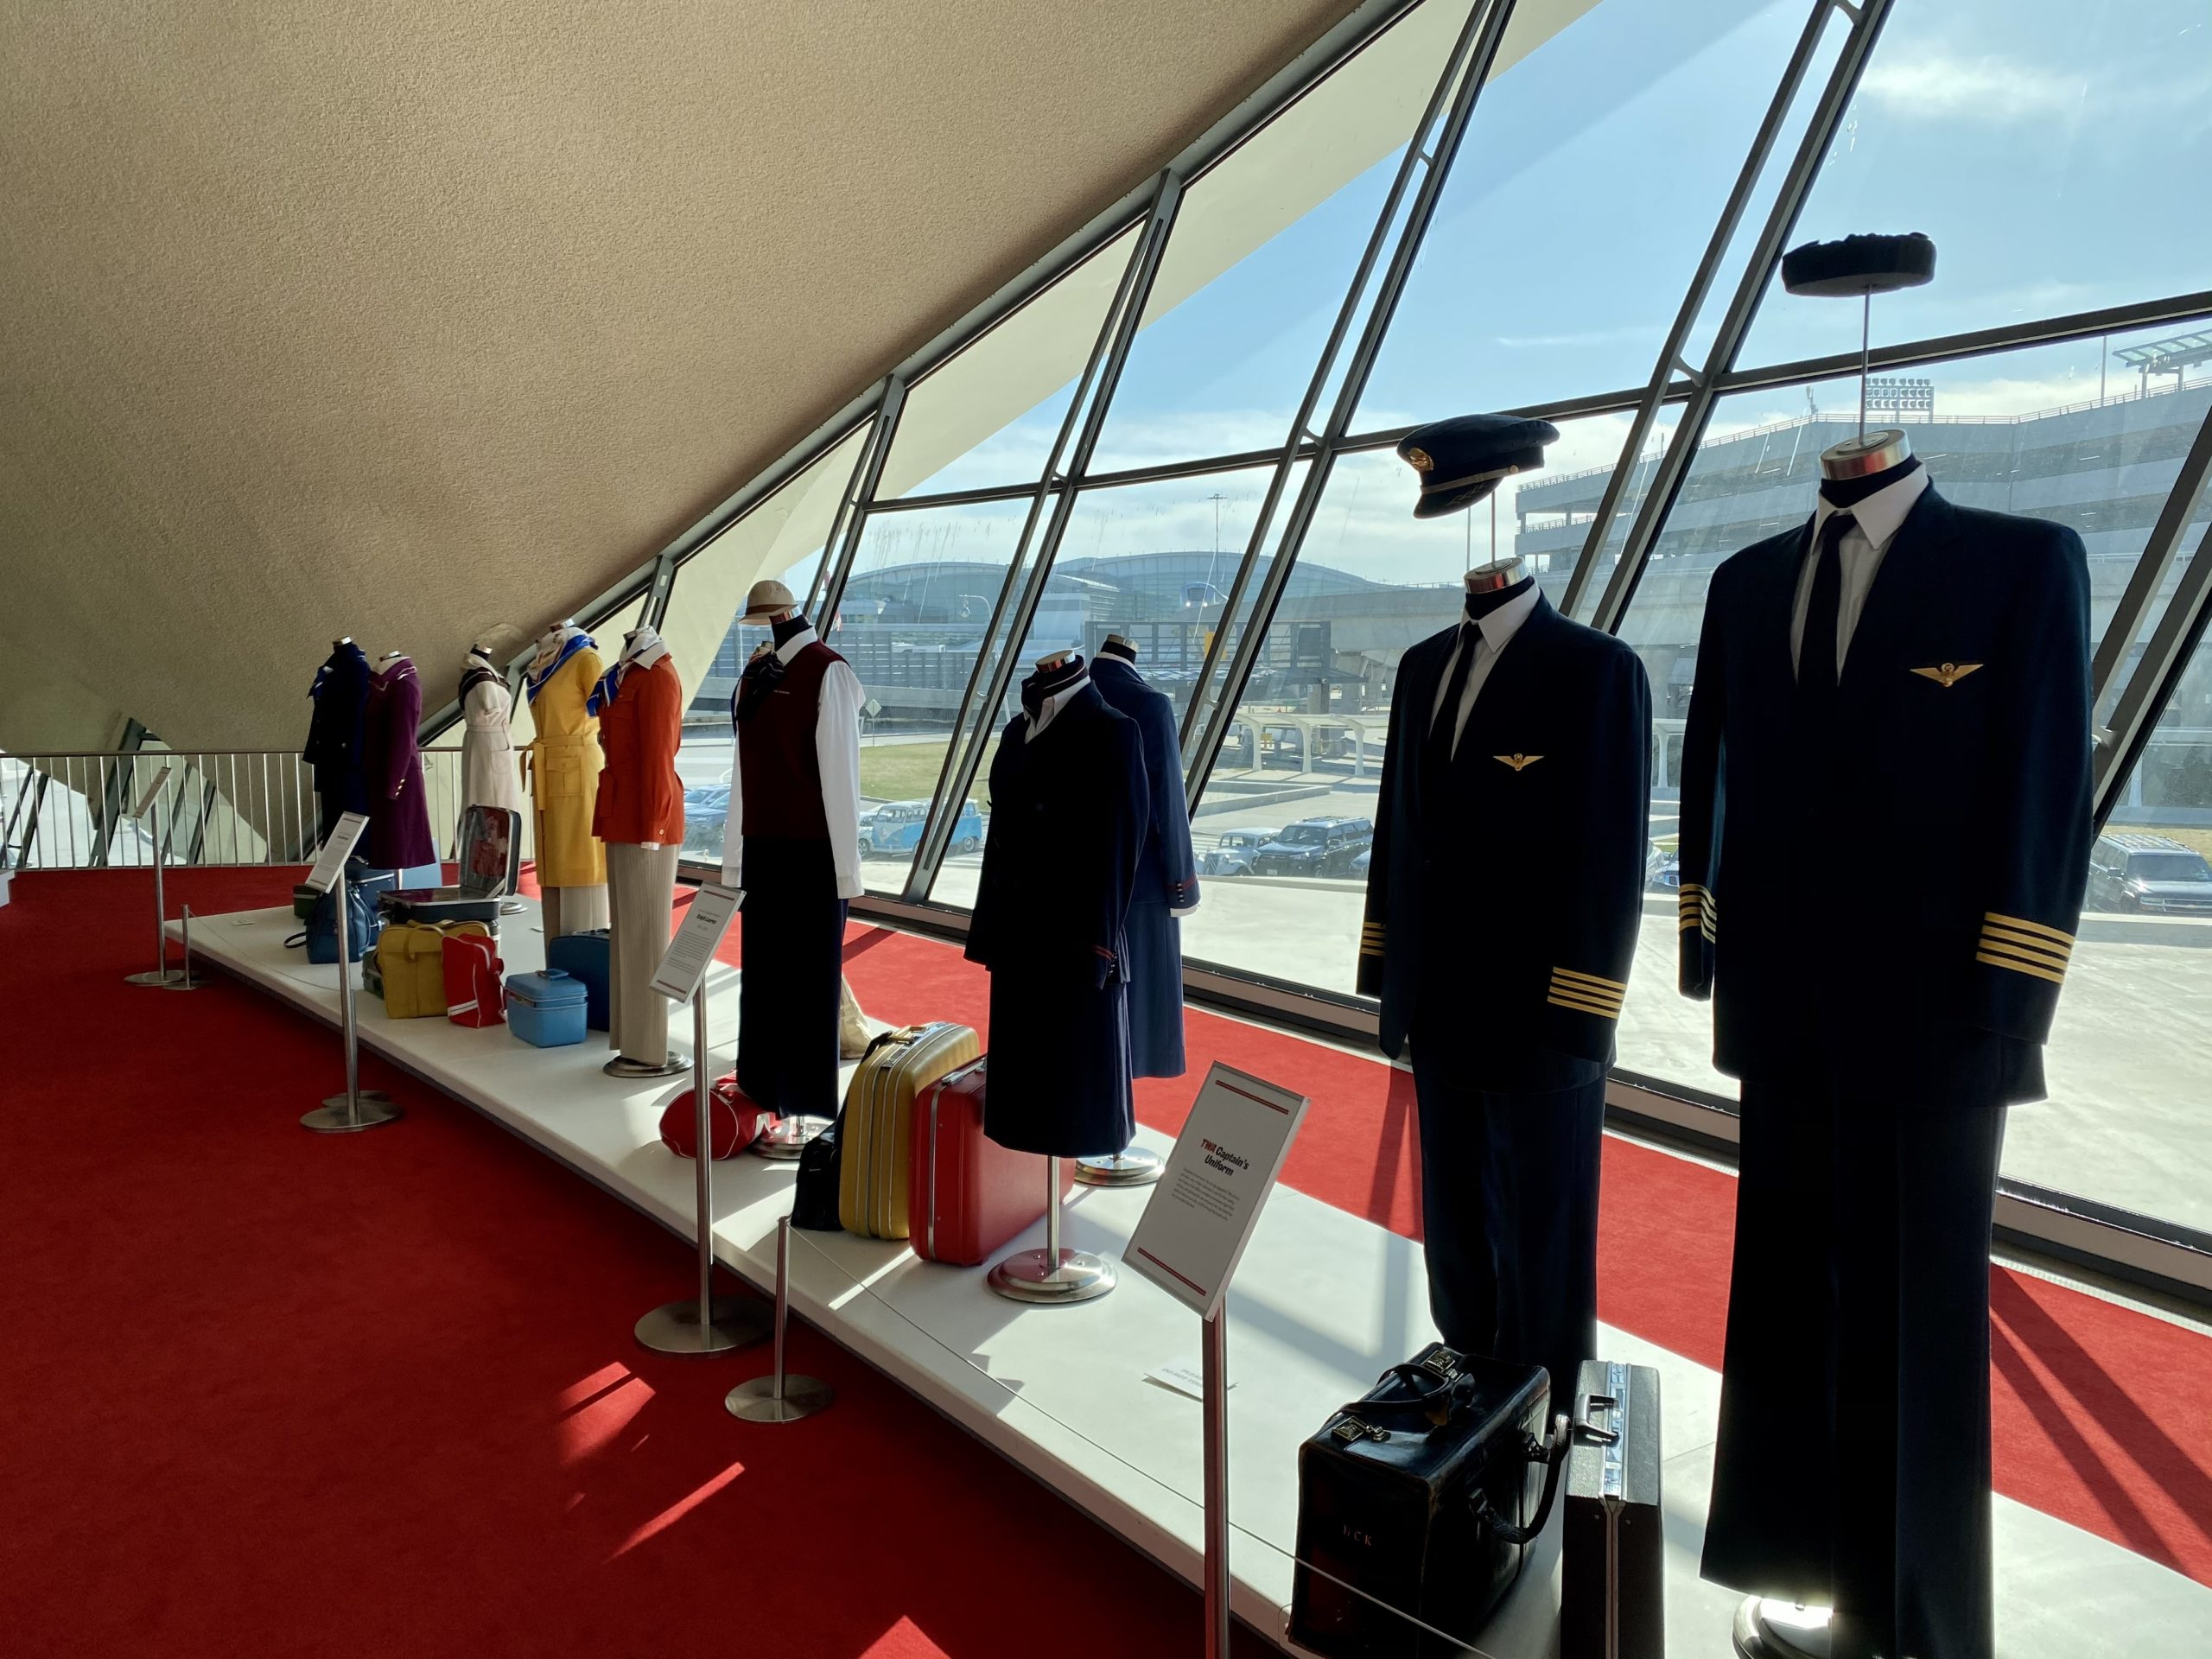 twa hotel flight attendant uniforms